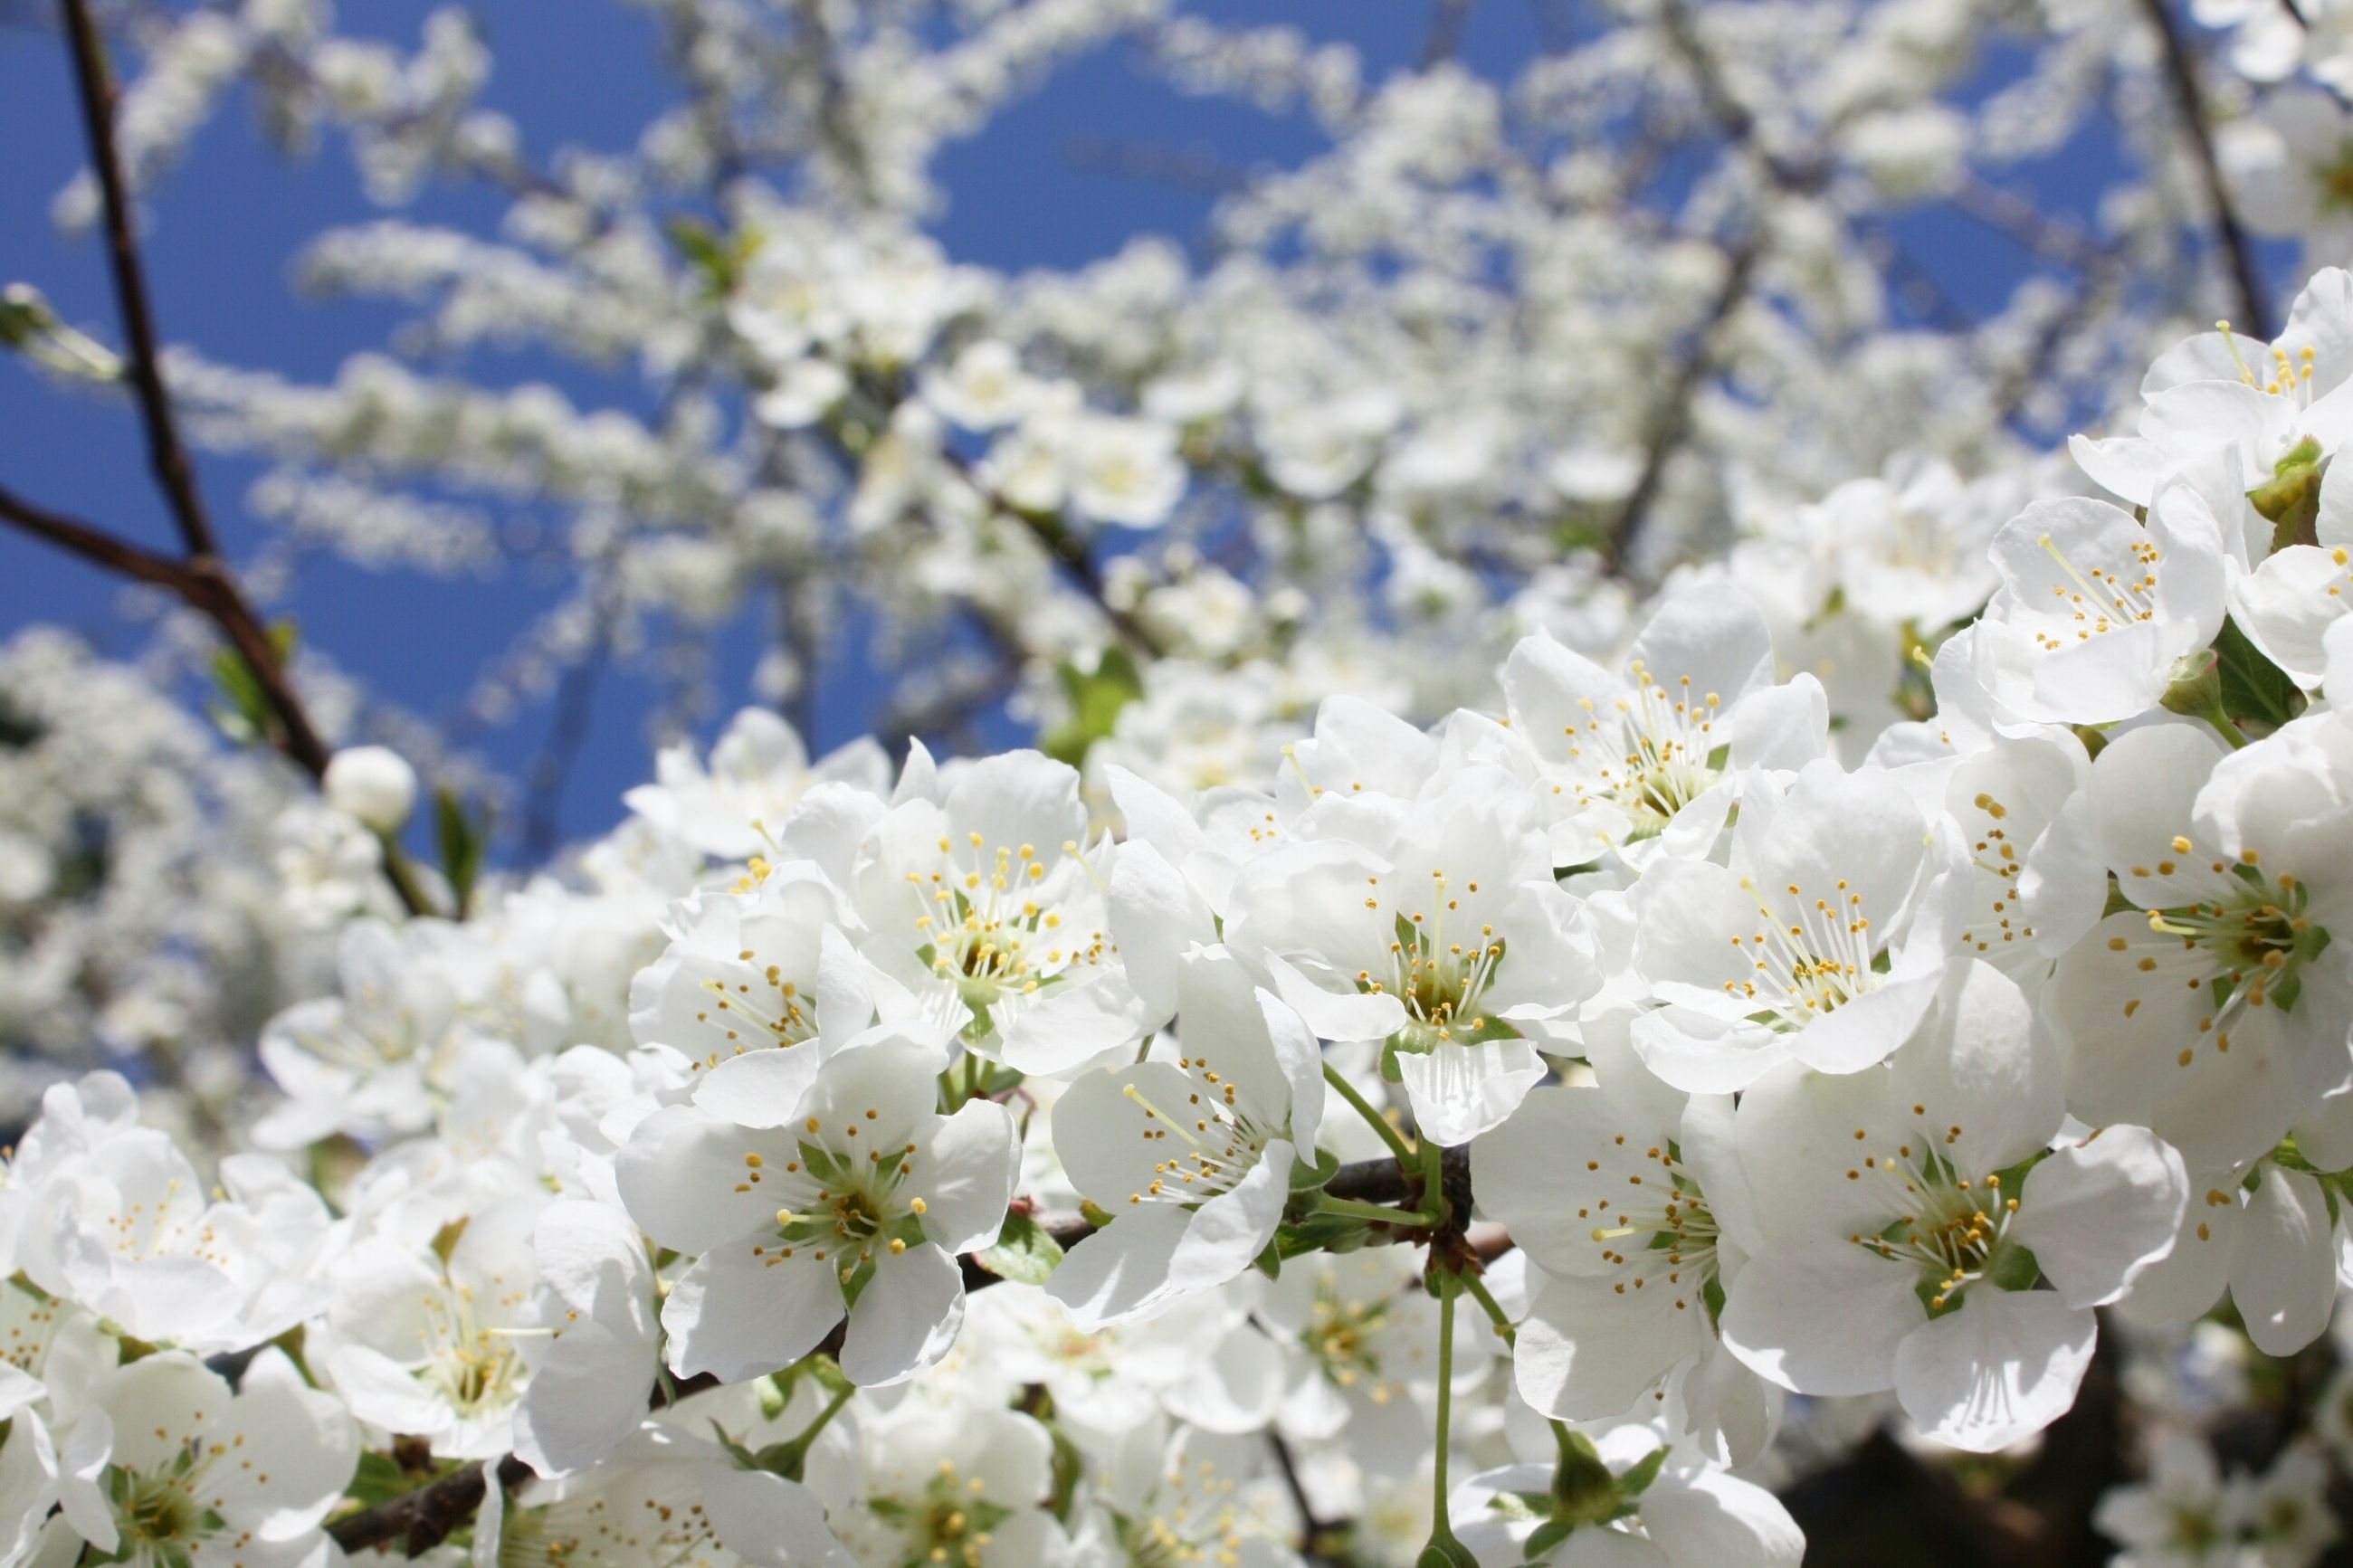 flower, white color, freshness, growth, fragility, beauty in nature, nature, focus on foreground, petal, blossom, white, close-up, tree, cherry blossom, blooming, branch, flower head, in bloom, springtime, outdoors